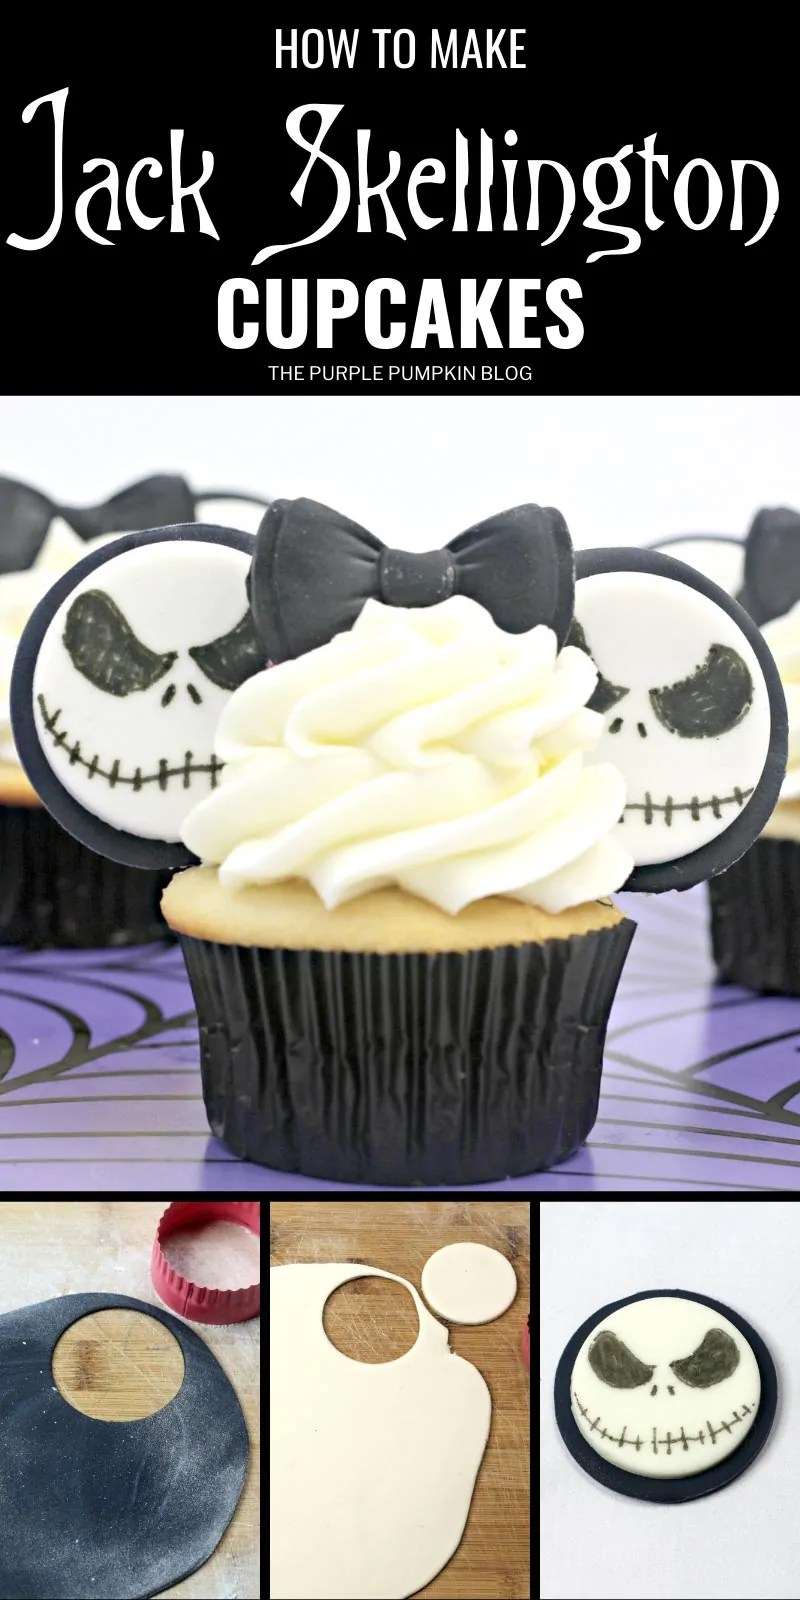 How to make Jack Skellington Cupcakes